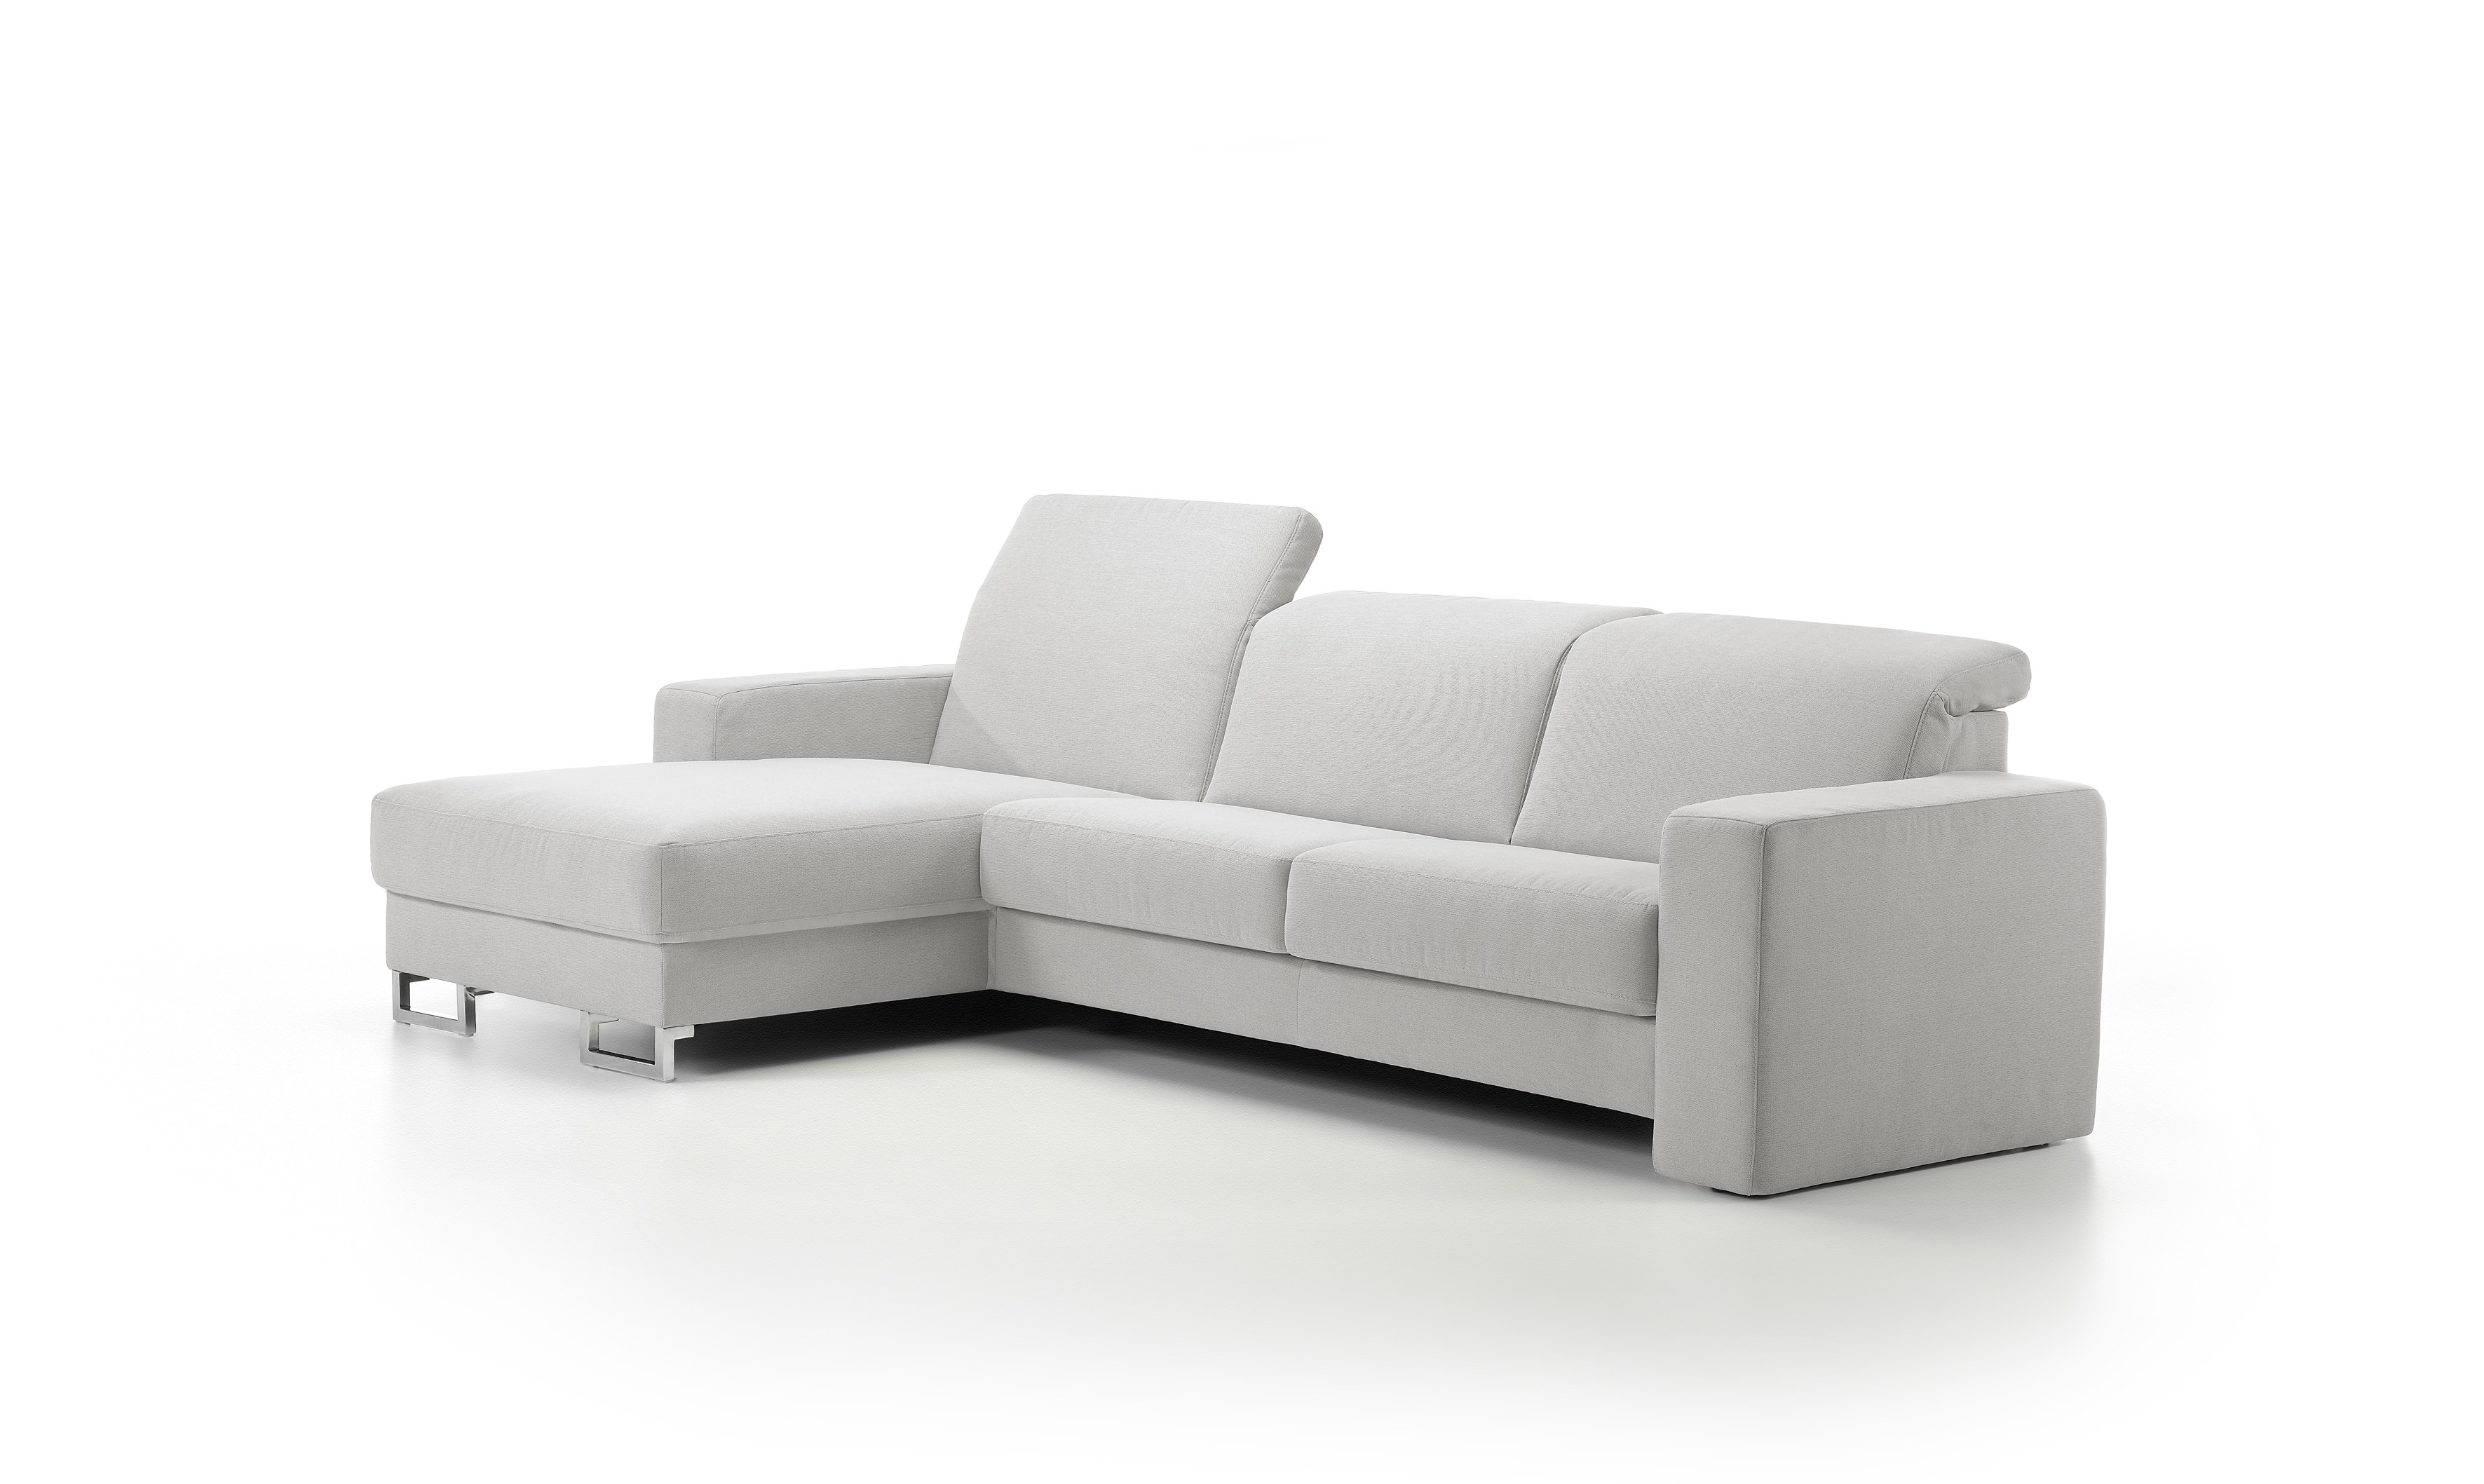 Artemis Leather Sectional By Rom Belgium At Nova Interiors